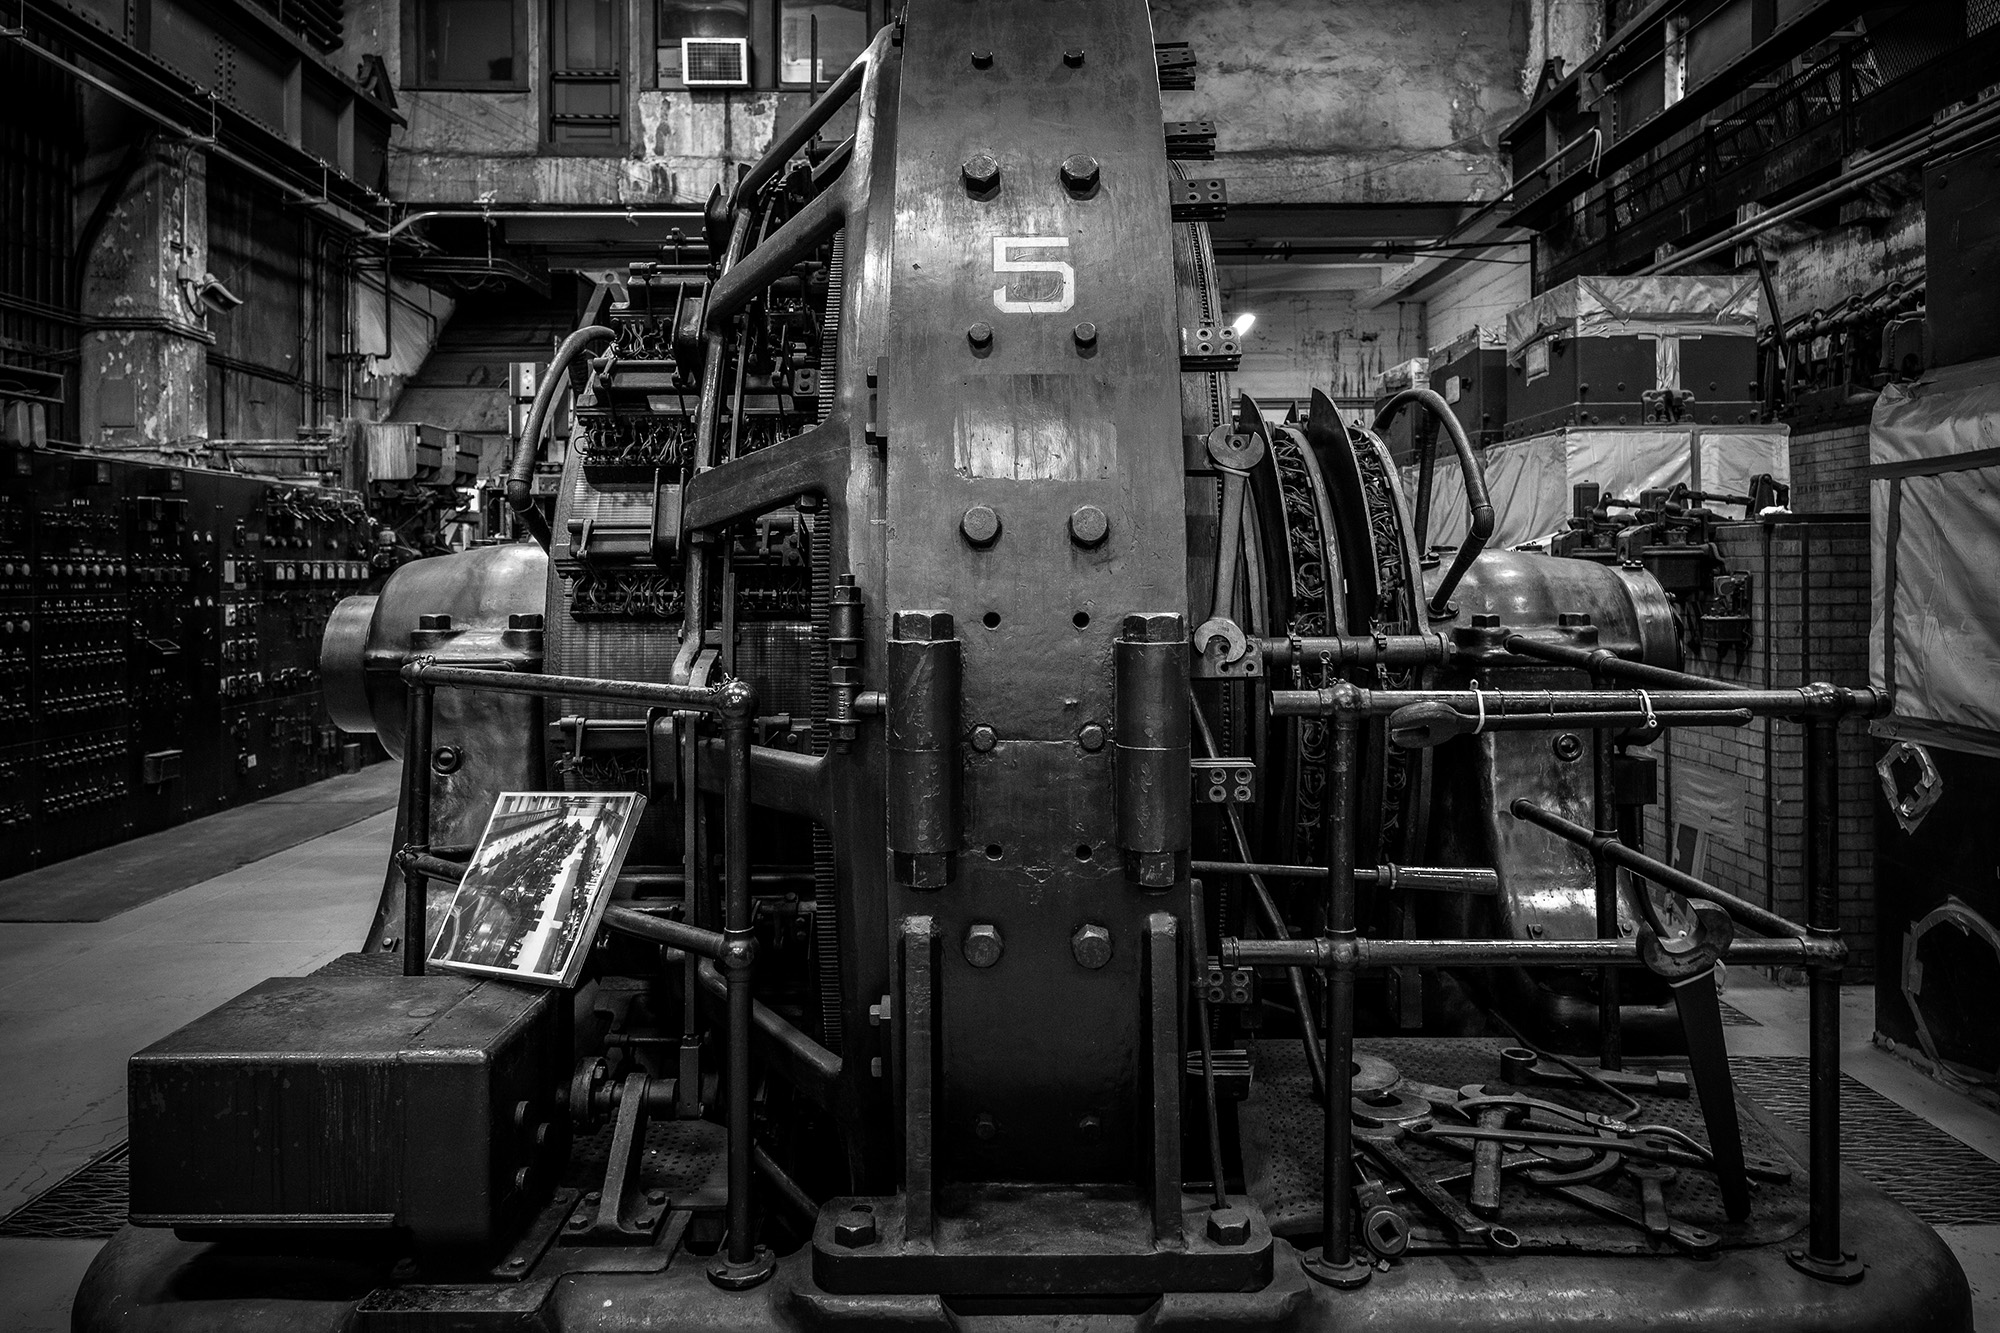 The secret sub-basement known as M42 is 13 stories below Manhatten, doesn't exist on any plans and still houses massive electrical converters dating from WWII. Like the railcar photo above, monochrome just made sense. Fujifilm X-Pro2 with a Fujinon 16-55mm lens. 1/15 @ f2.8, ISO 1250.